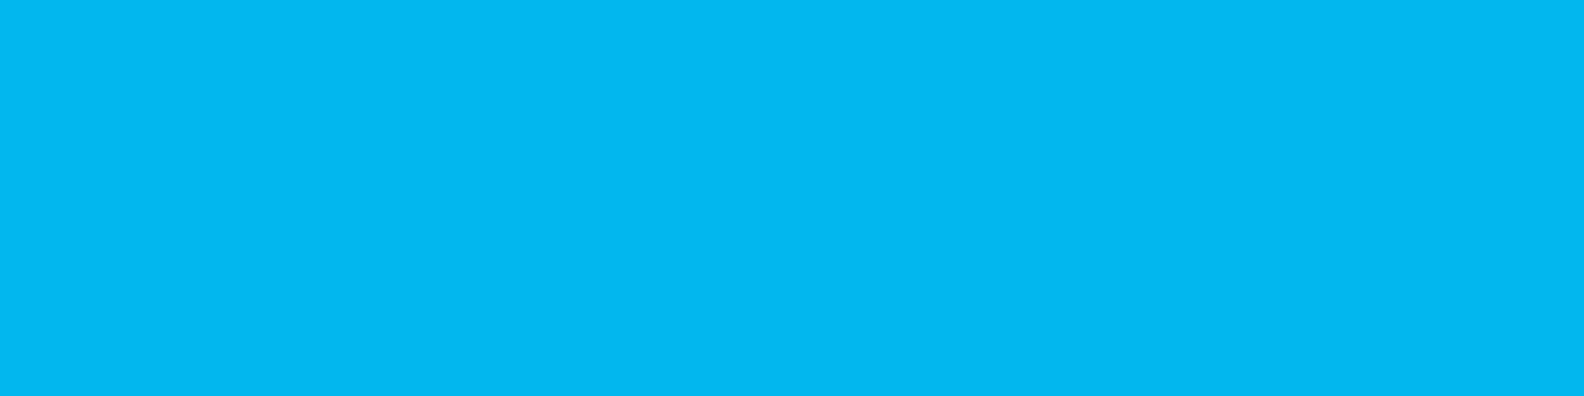 1584x396 Cyan Process Solid Color Background